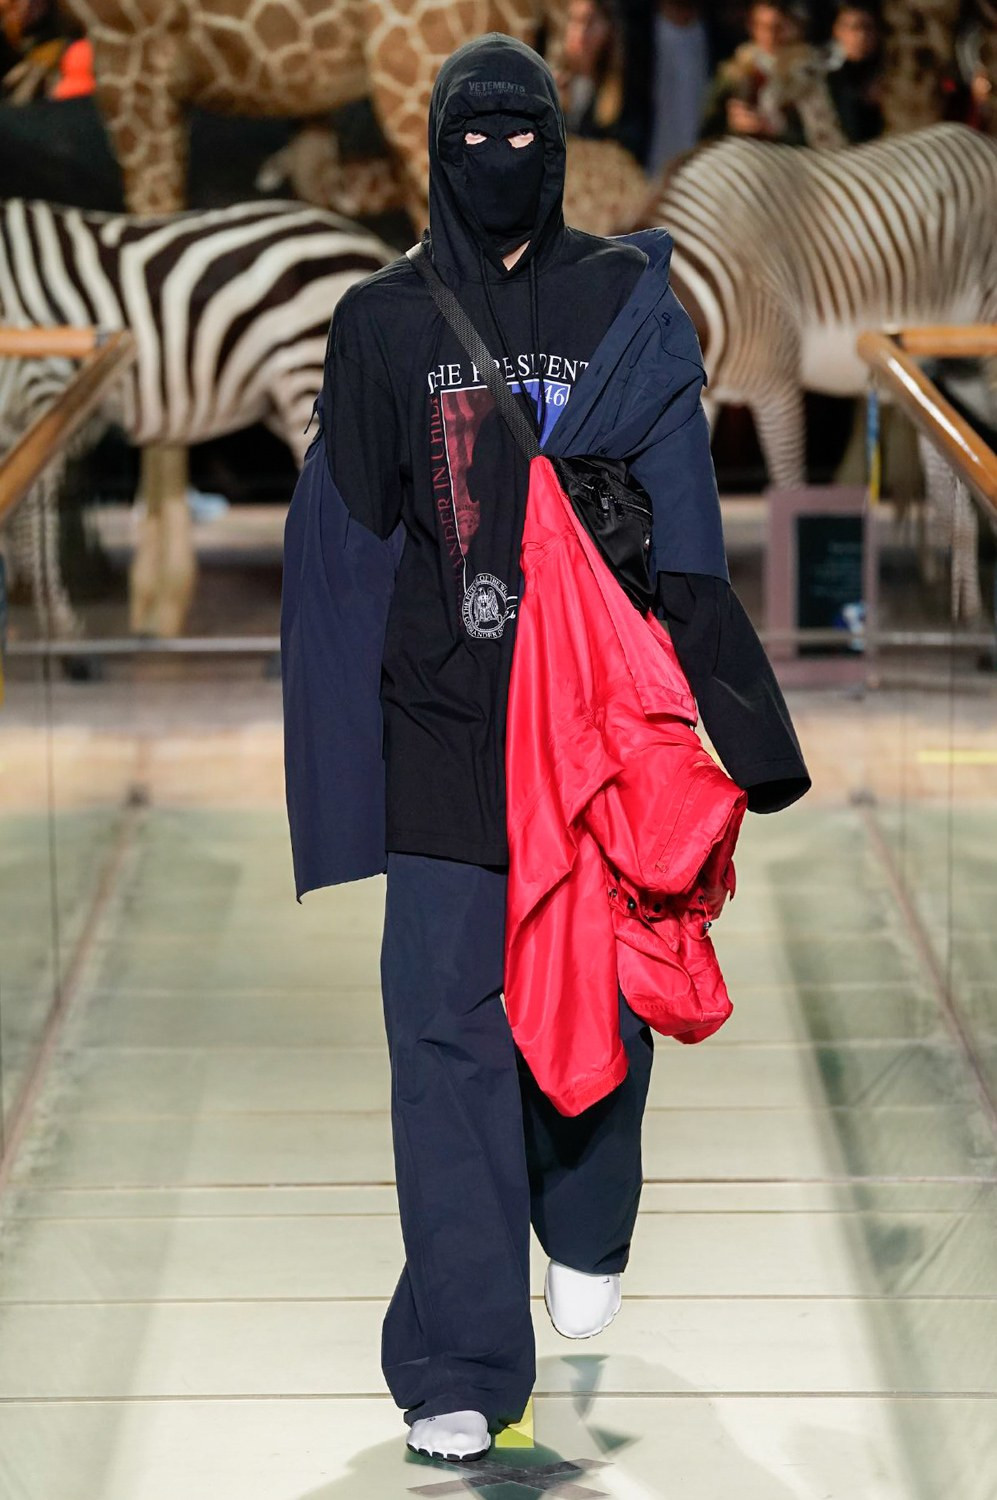 https---vetements-aw19-dtf-magazine.com-image-2019-01-vetements-fall-winter-2019-paris-fashion-week-18